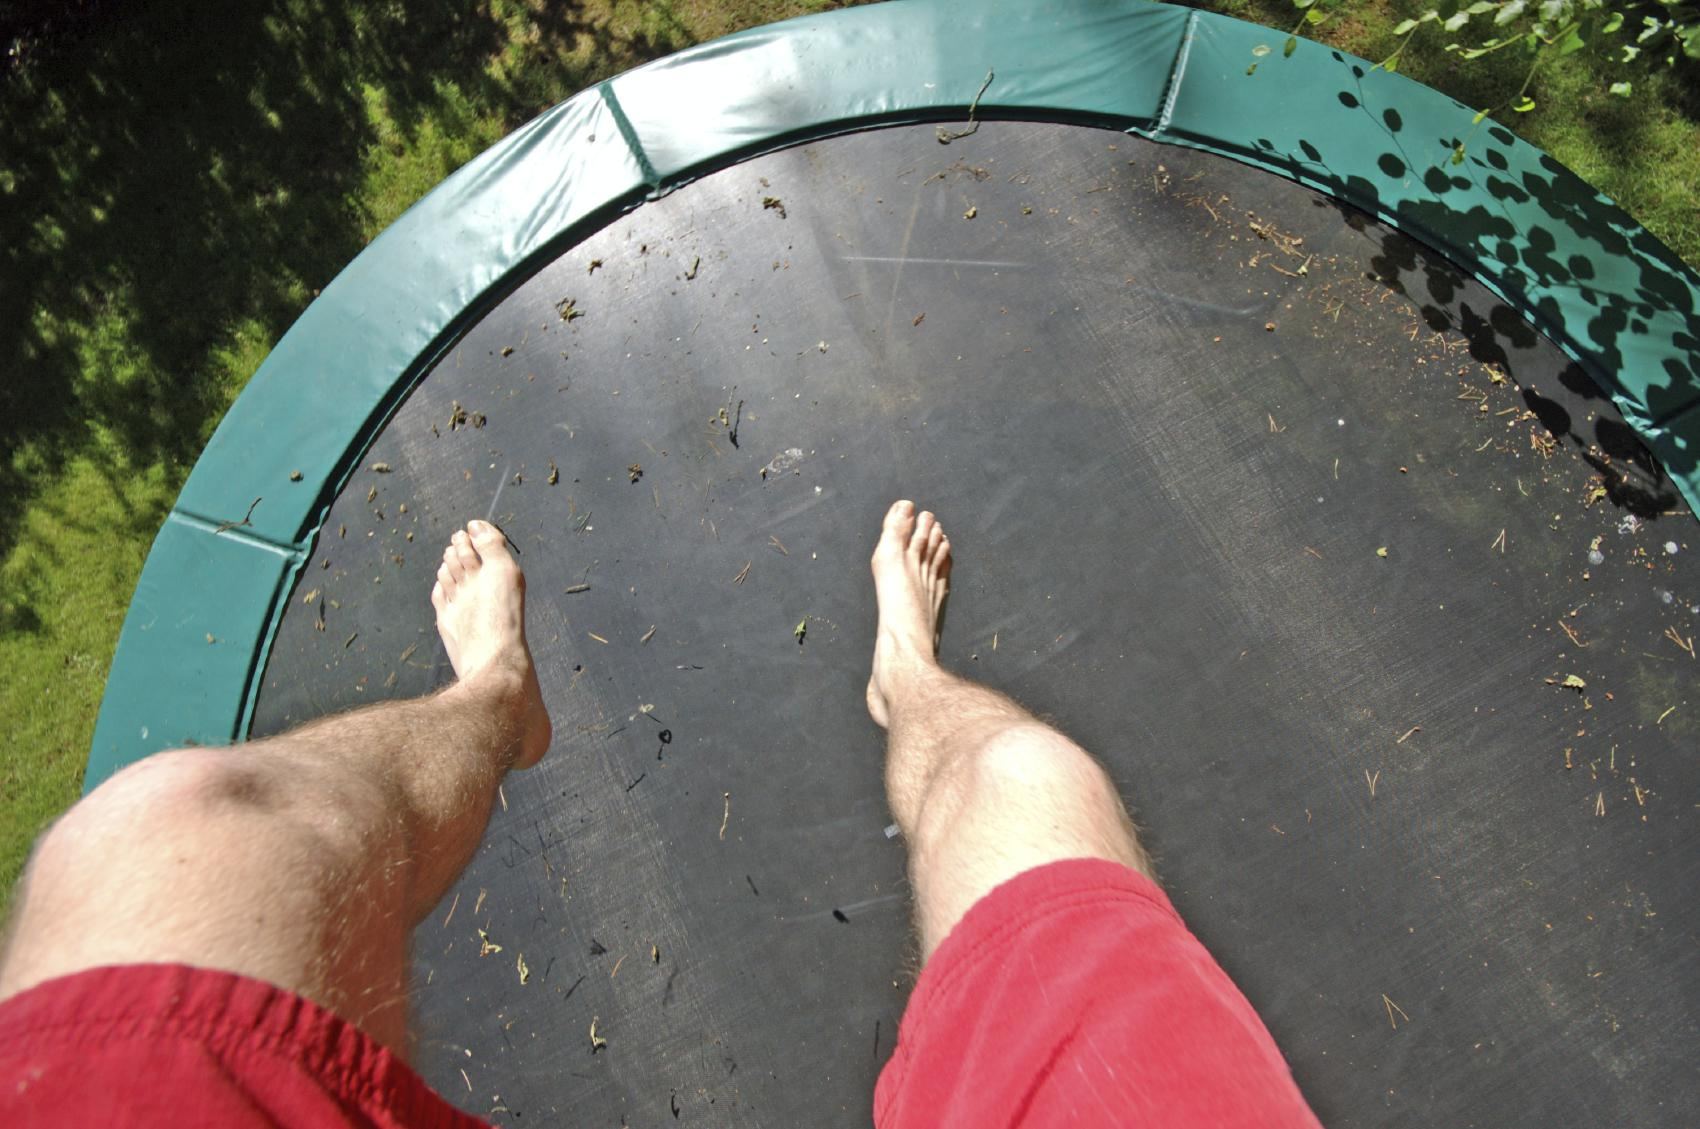 My Homeowner's Policy Prohibits Trampolines: What's the Deal? on avanteinsurance.com